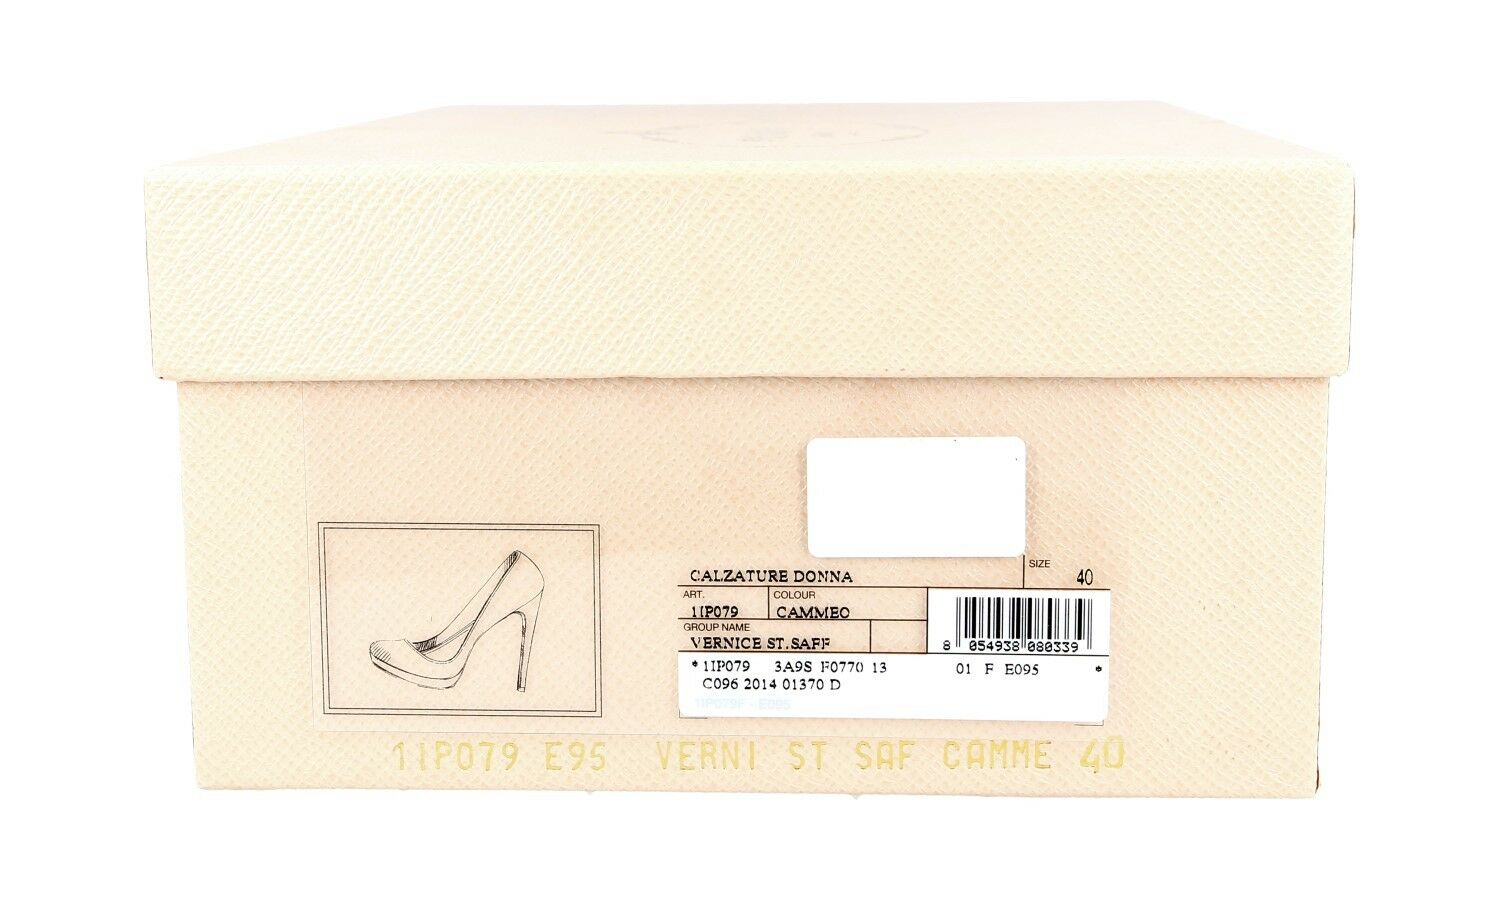 LUXUS PRADA SAFFIANO PUMPS SCHUHE SCHUHE SCHUHE 1IP079 CAMMEO NEU NEW 40 40,5 UK 7 54dfb6